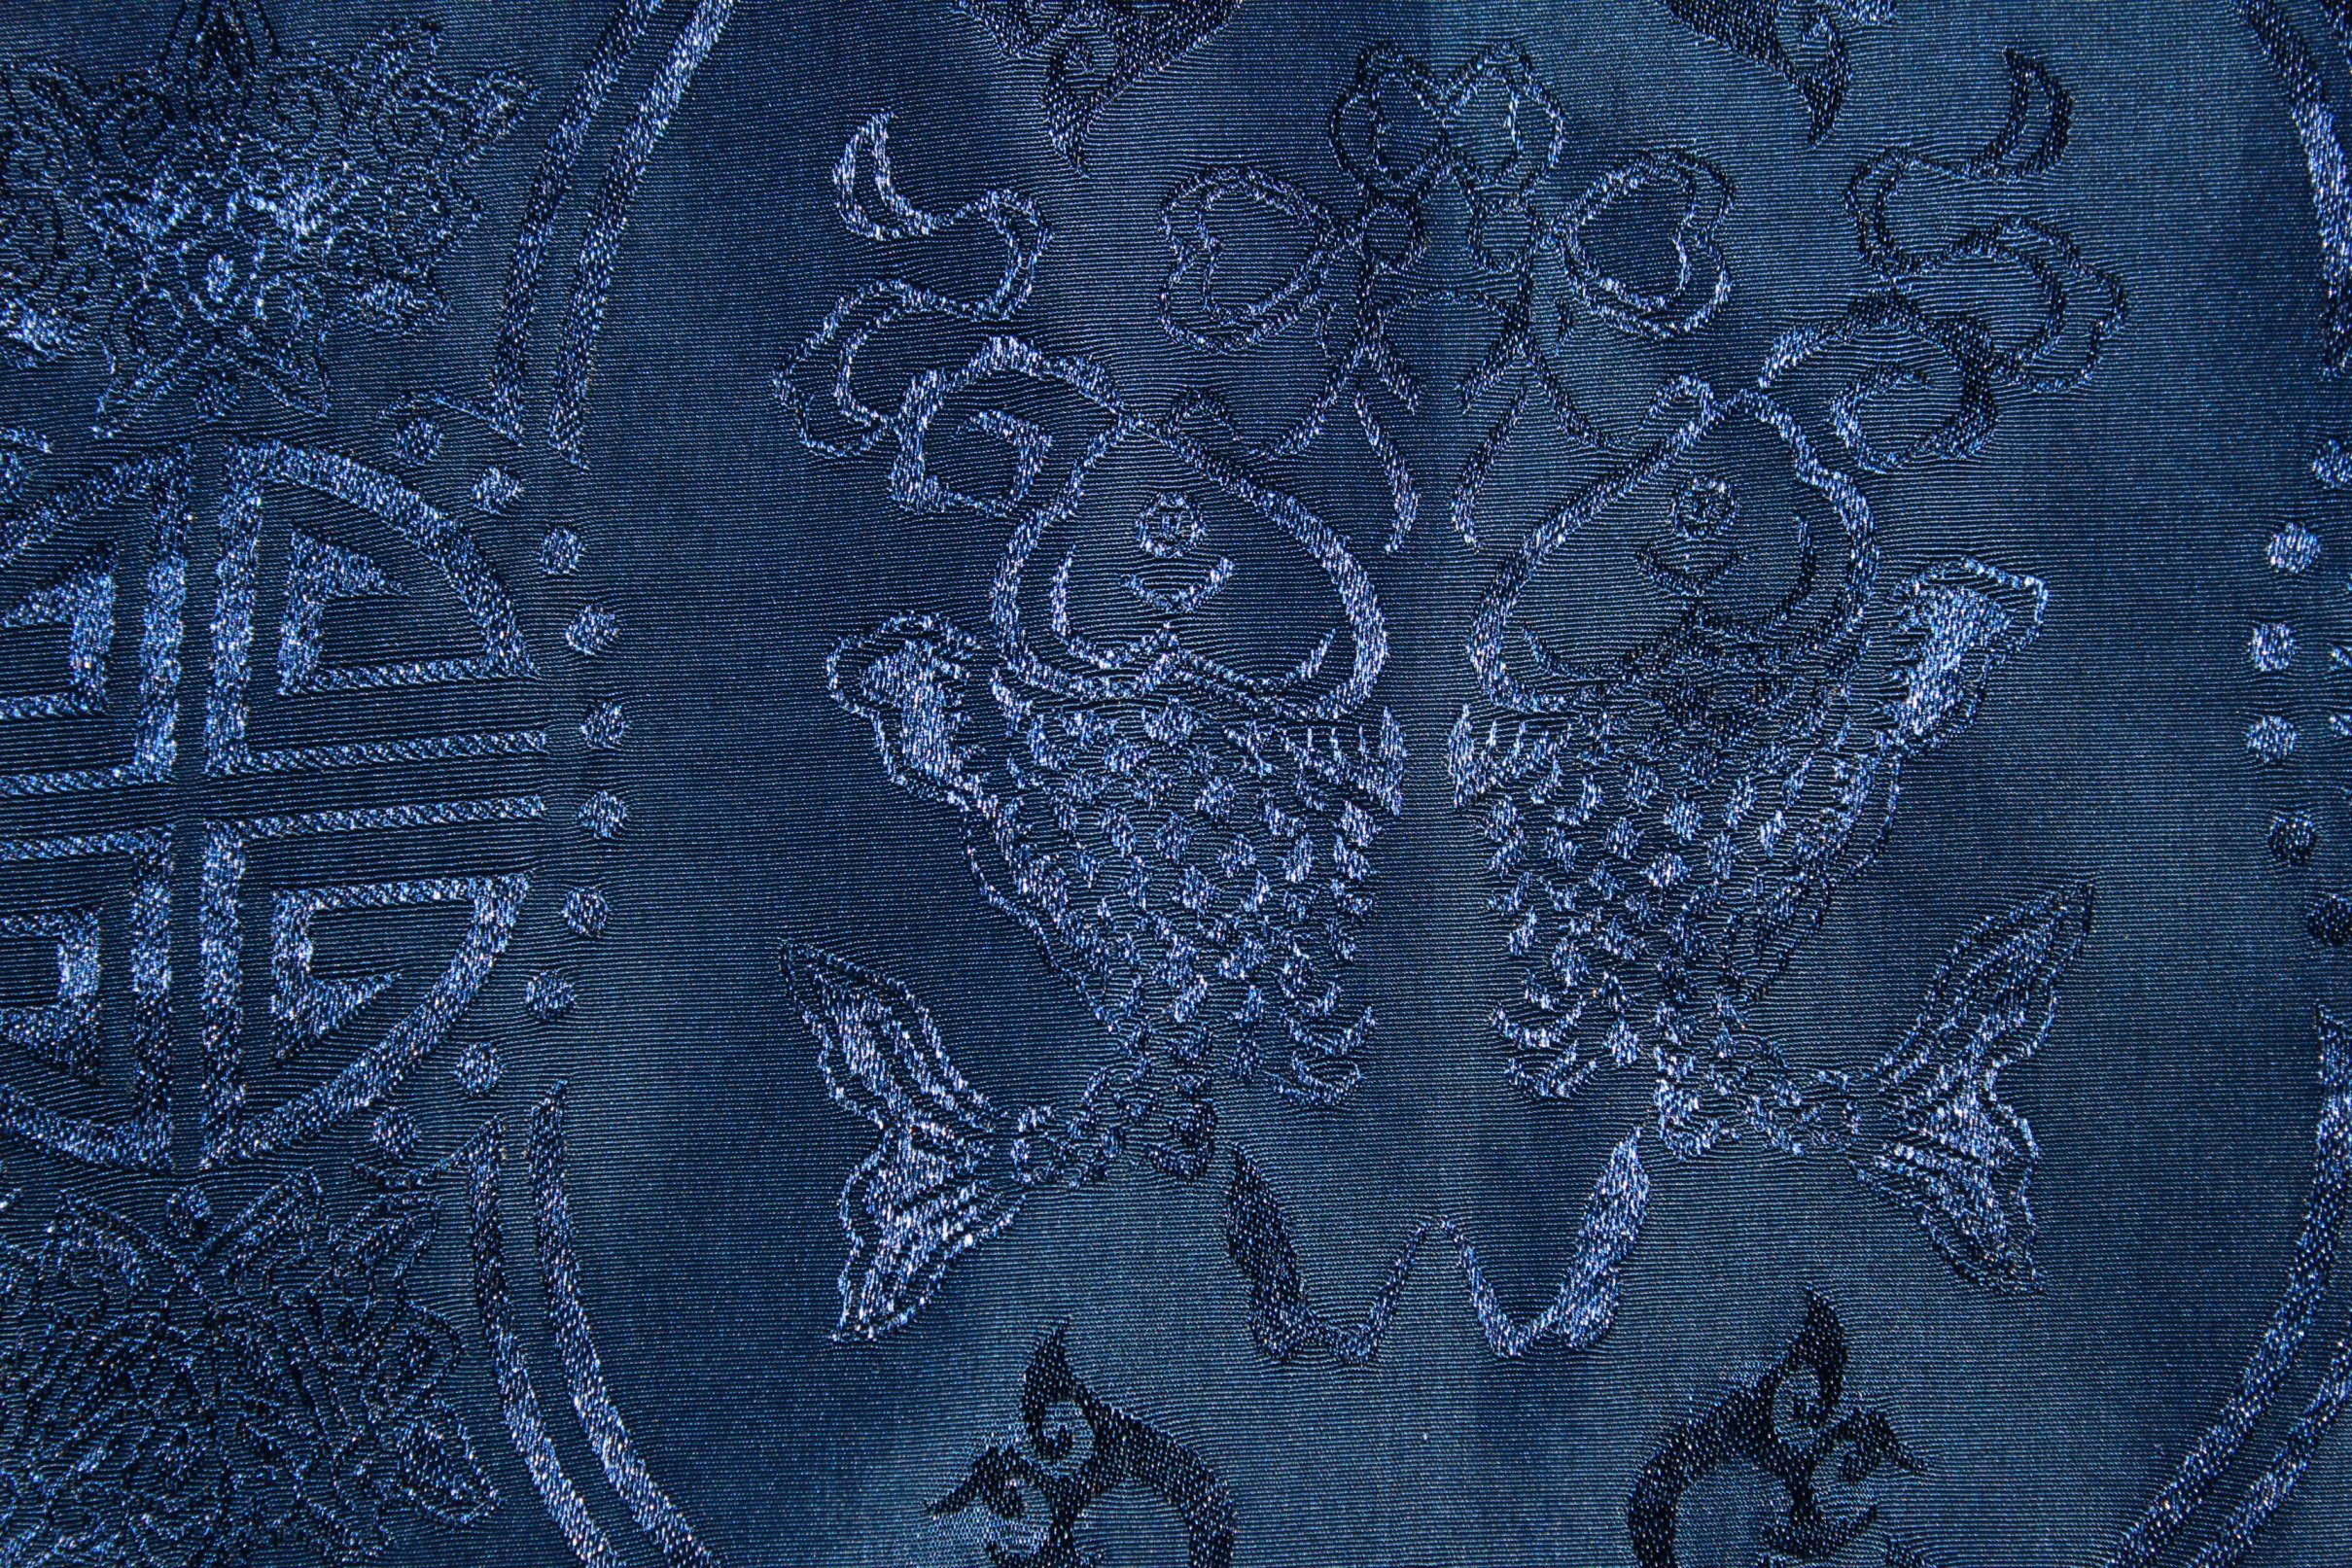 Blue Chinese traditional Fabric  Free Public Domain Stock